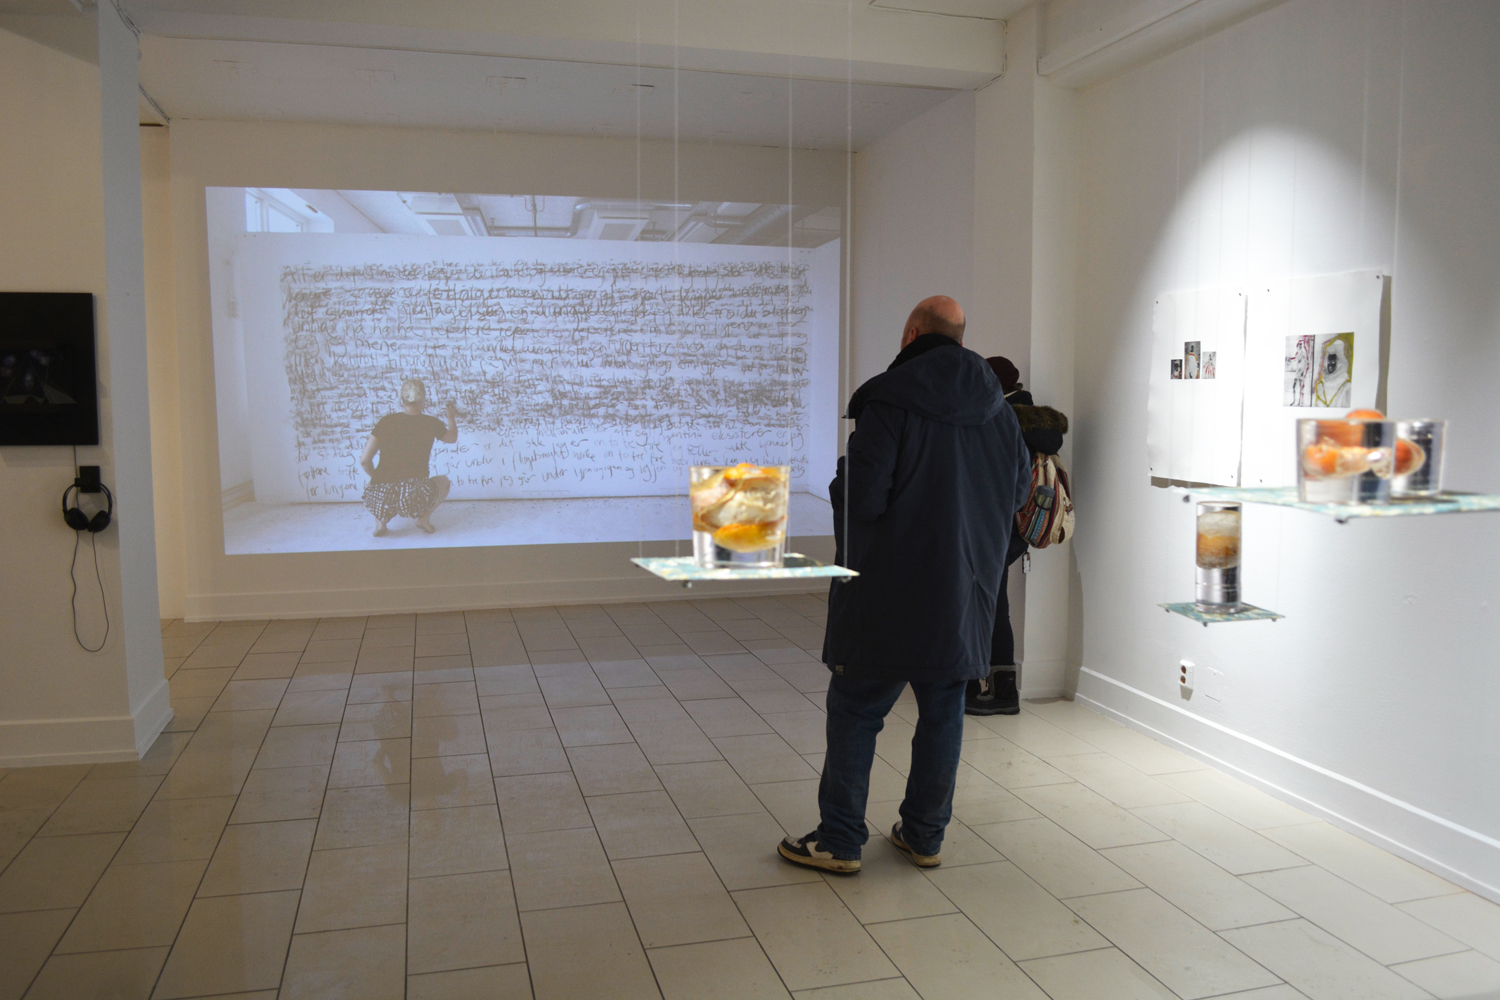 a-lick-and-a-promise-vernissage-5-web.jpg